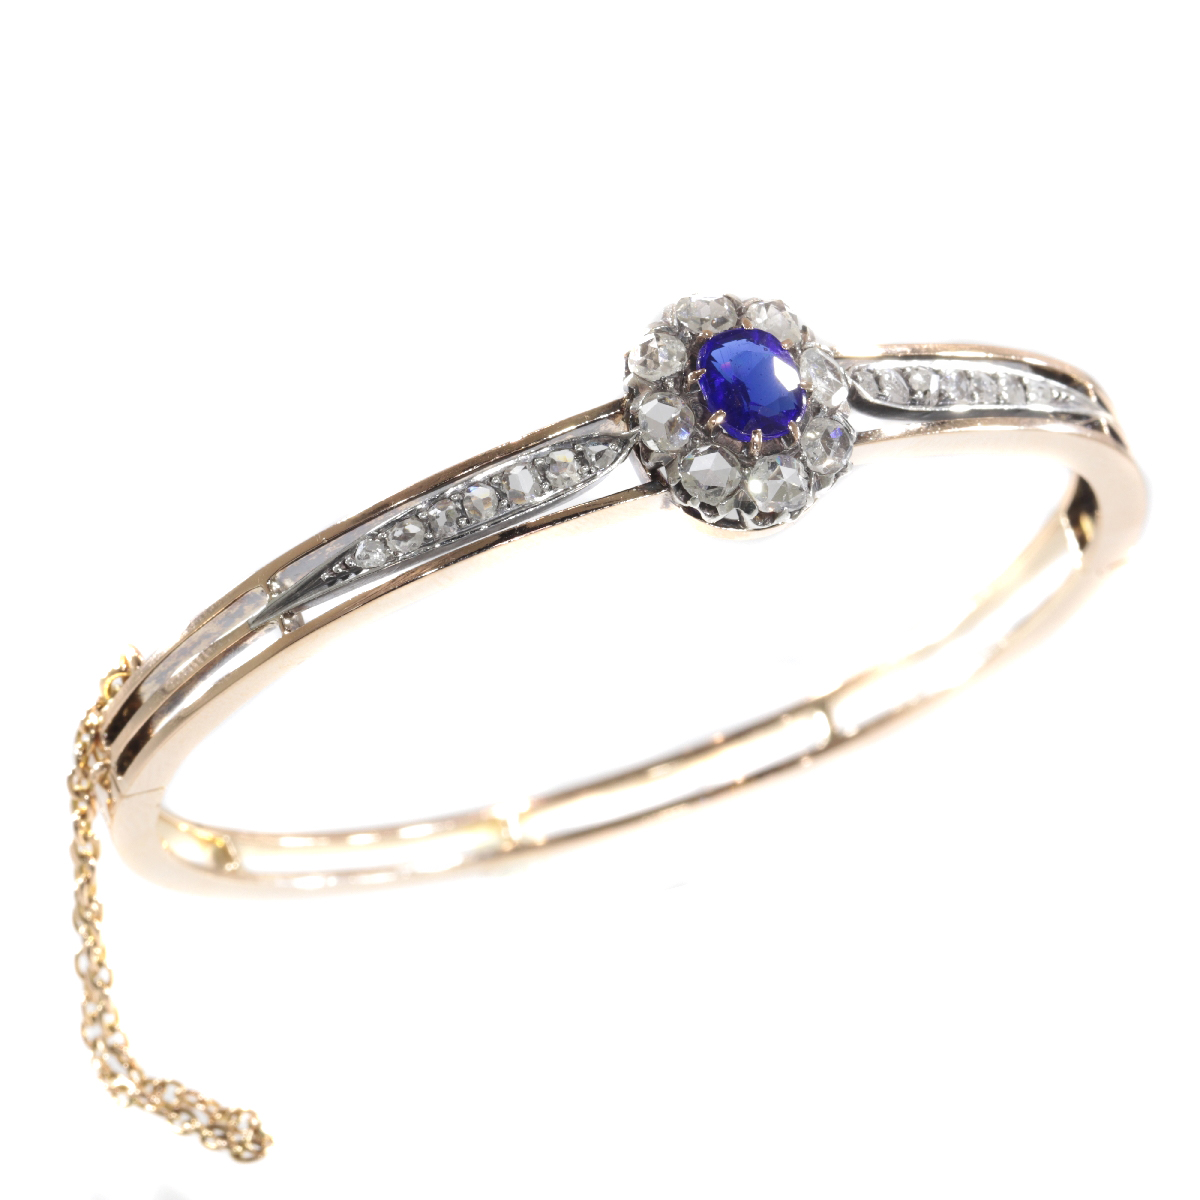 Antique Victorian gold bangle set with diamonds and blue strass